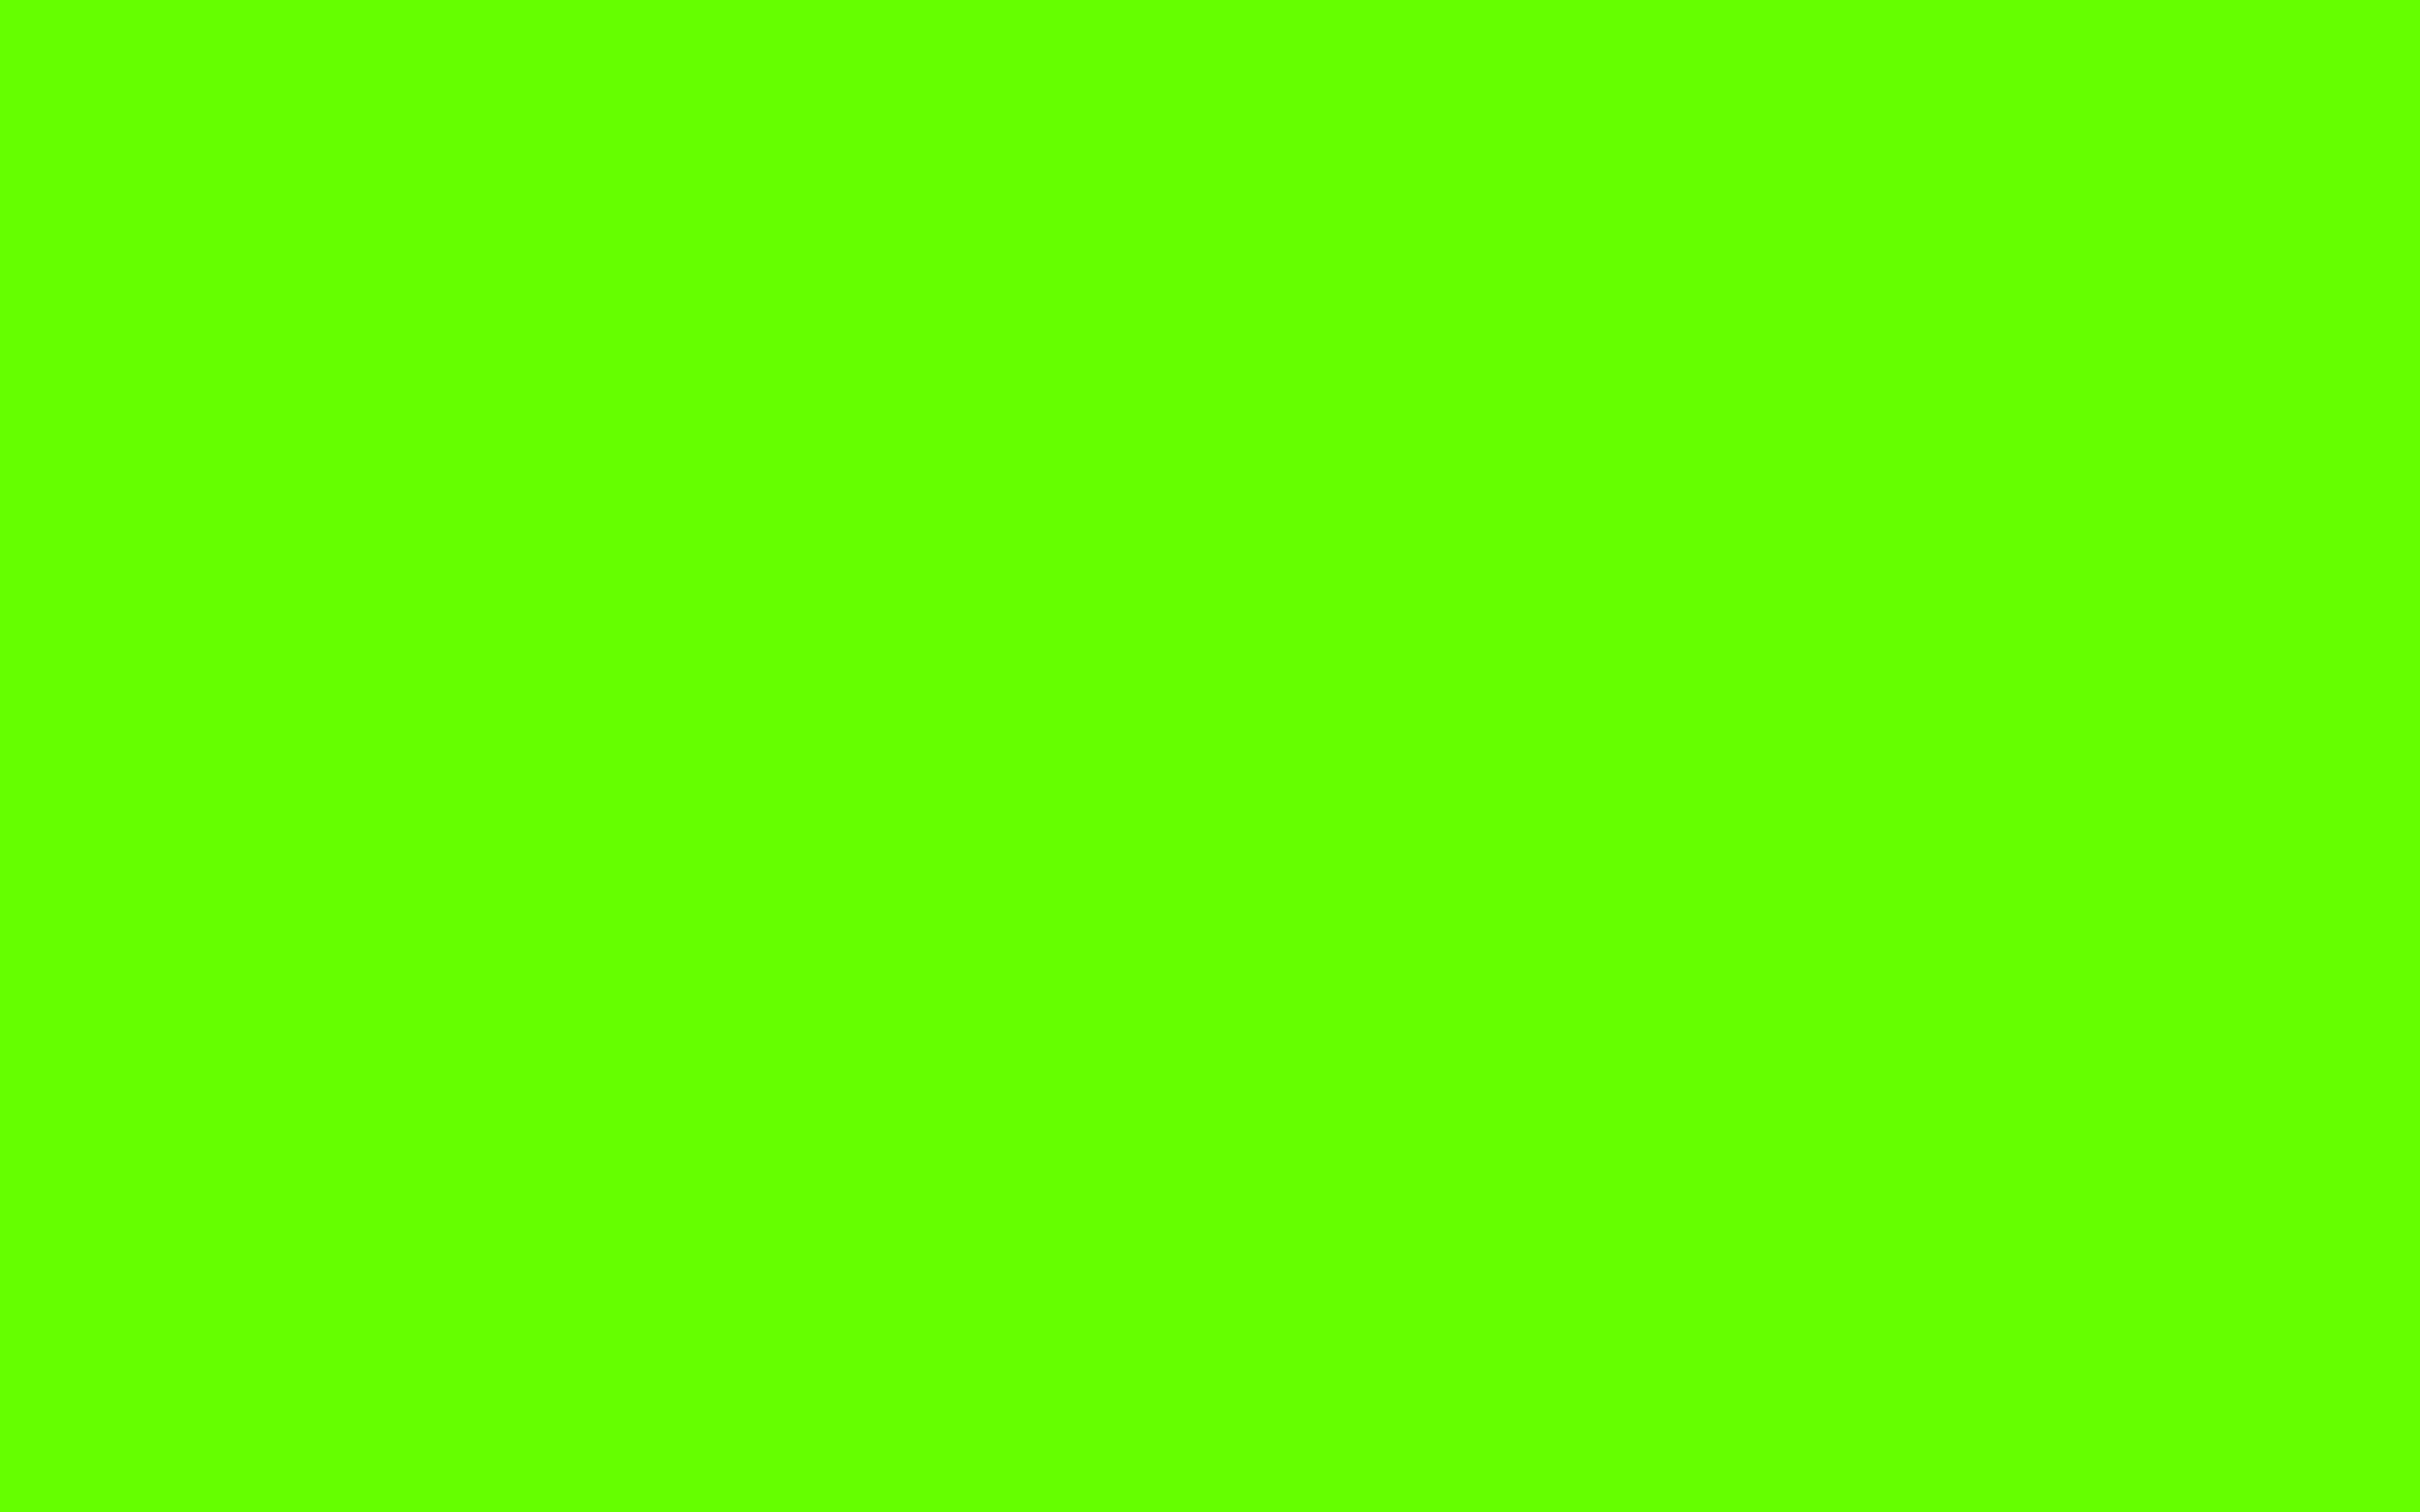 2560x1600 Bright Green Solid Color Background